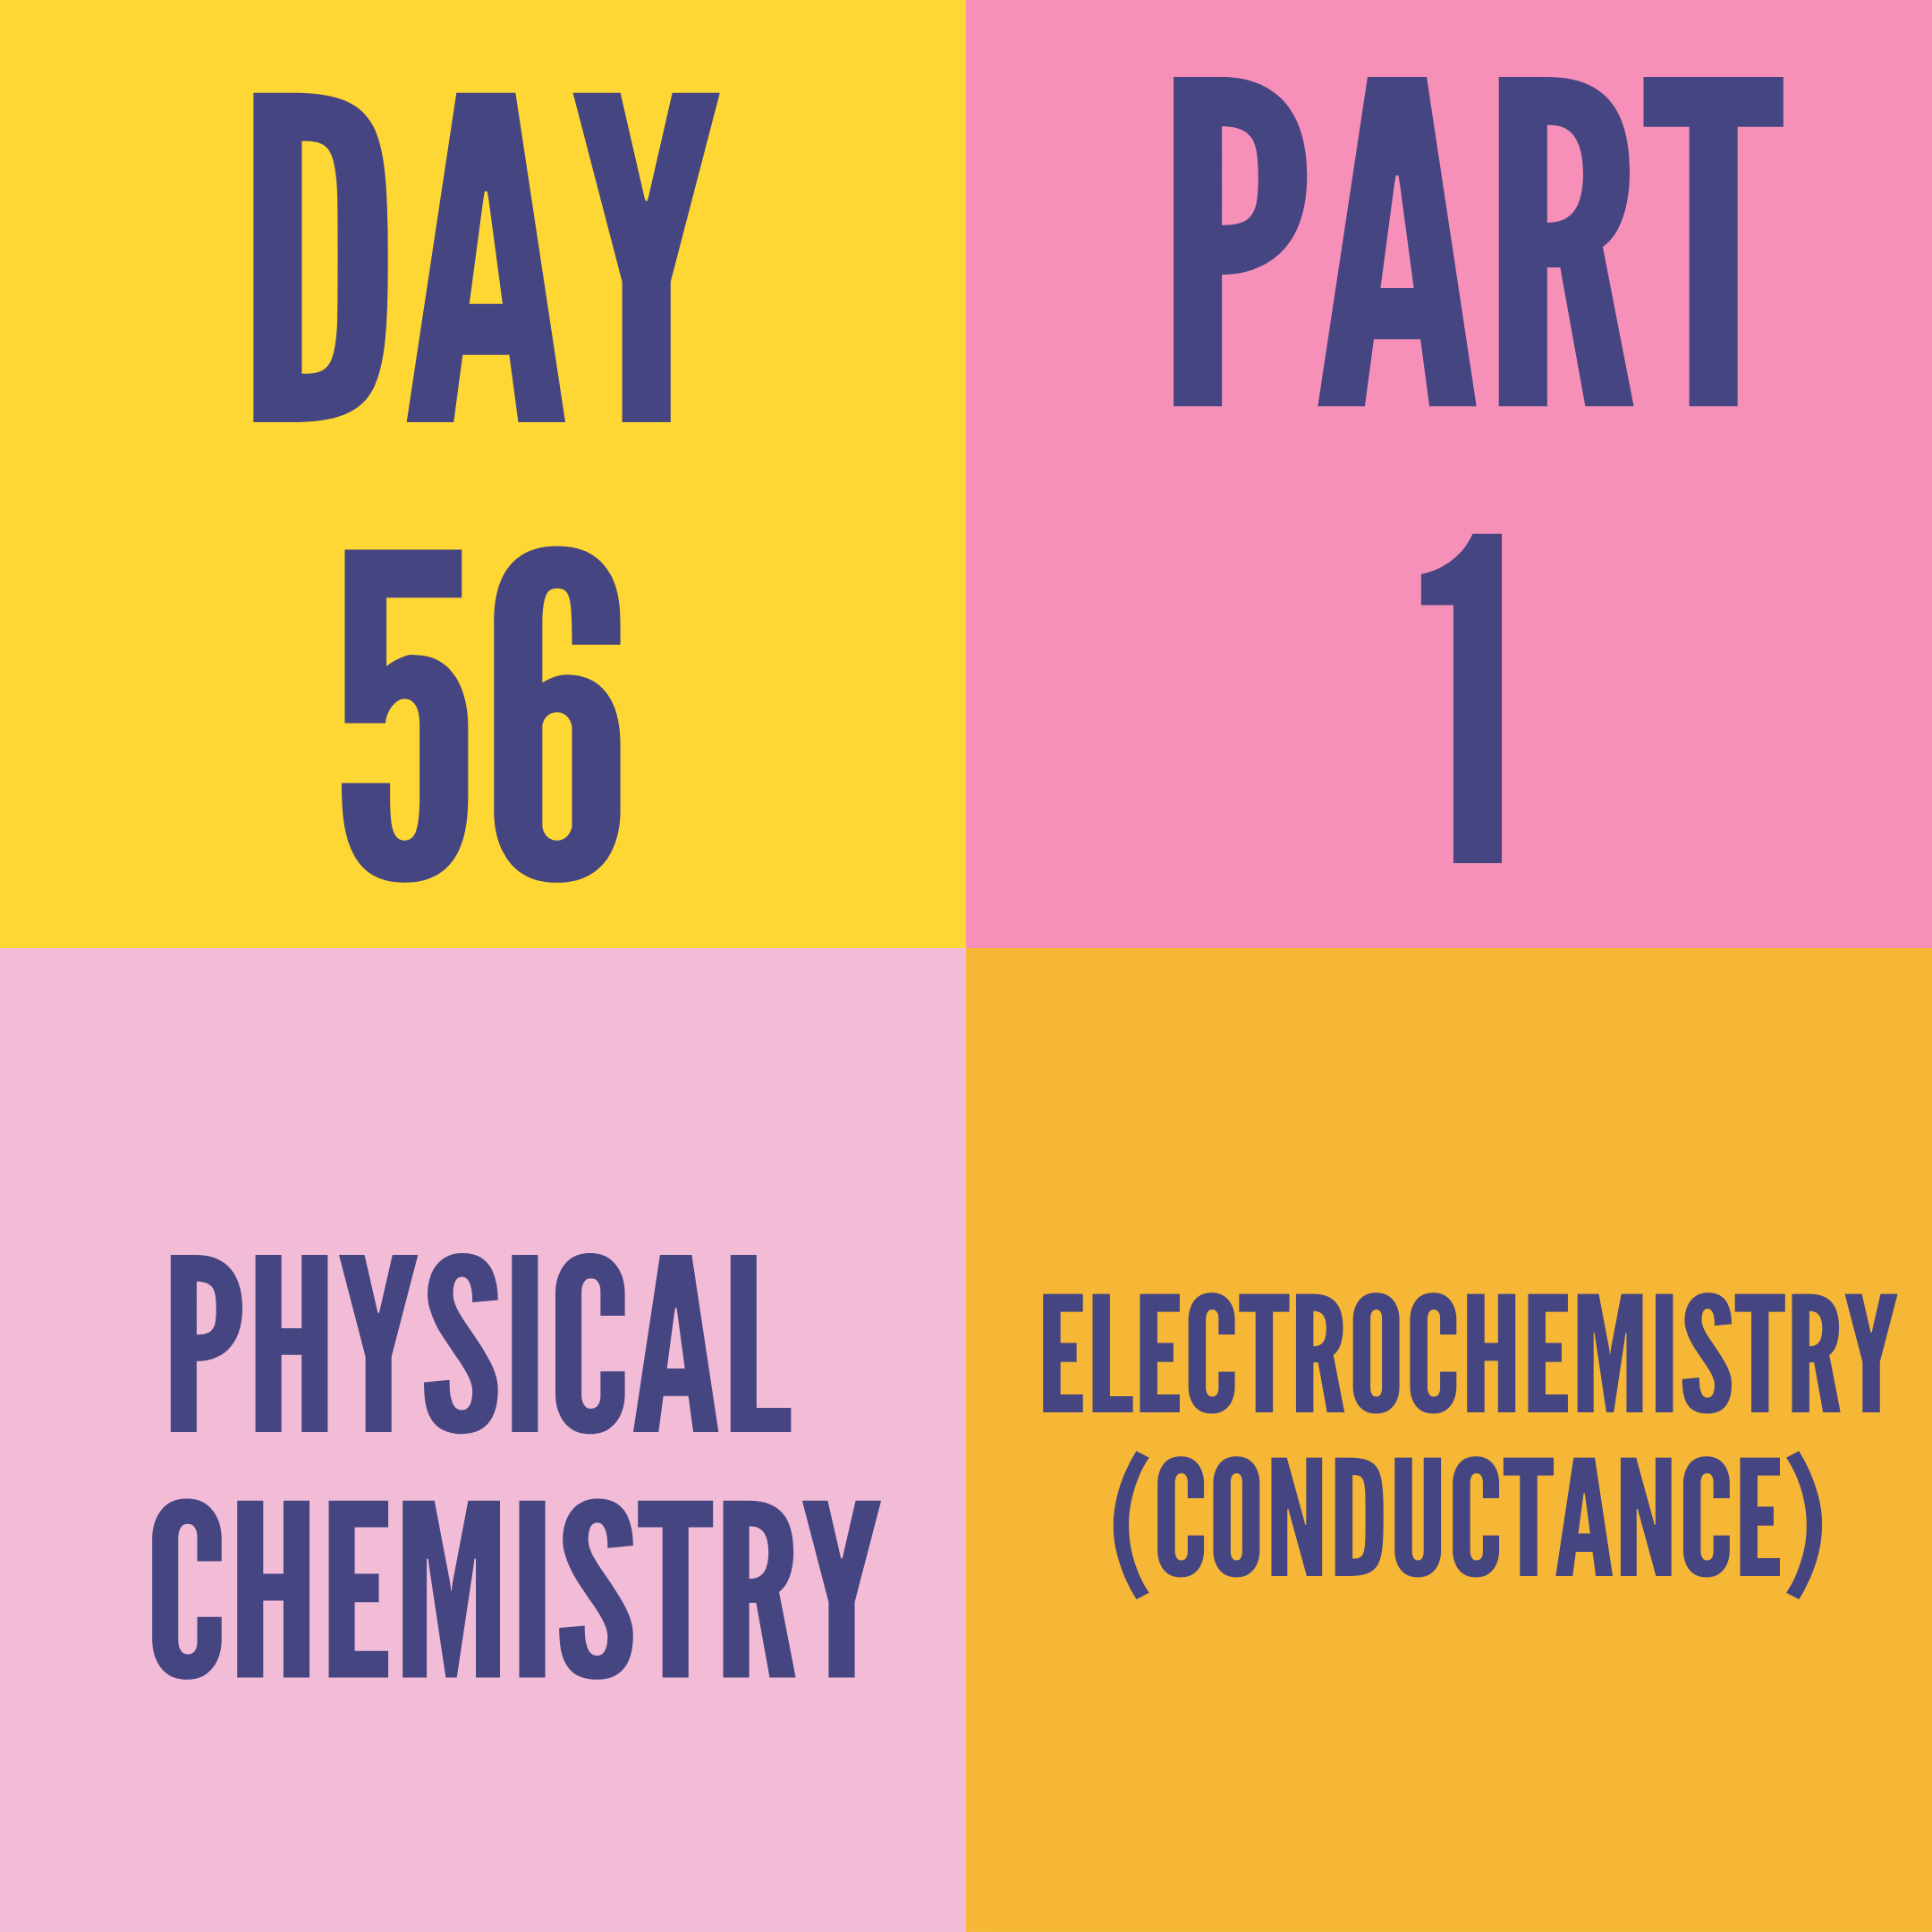 DAY-56 PART-1 ELECTROCHEMISTRY (CONDUCTANCE)